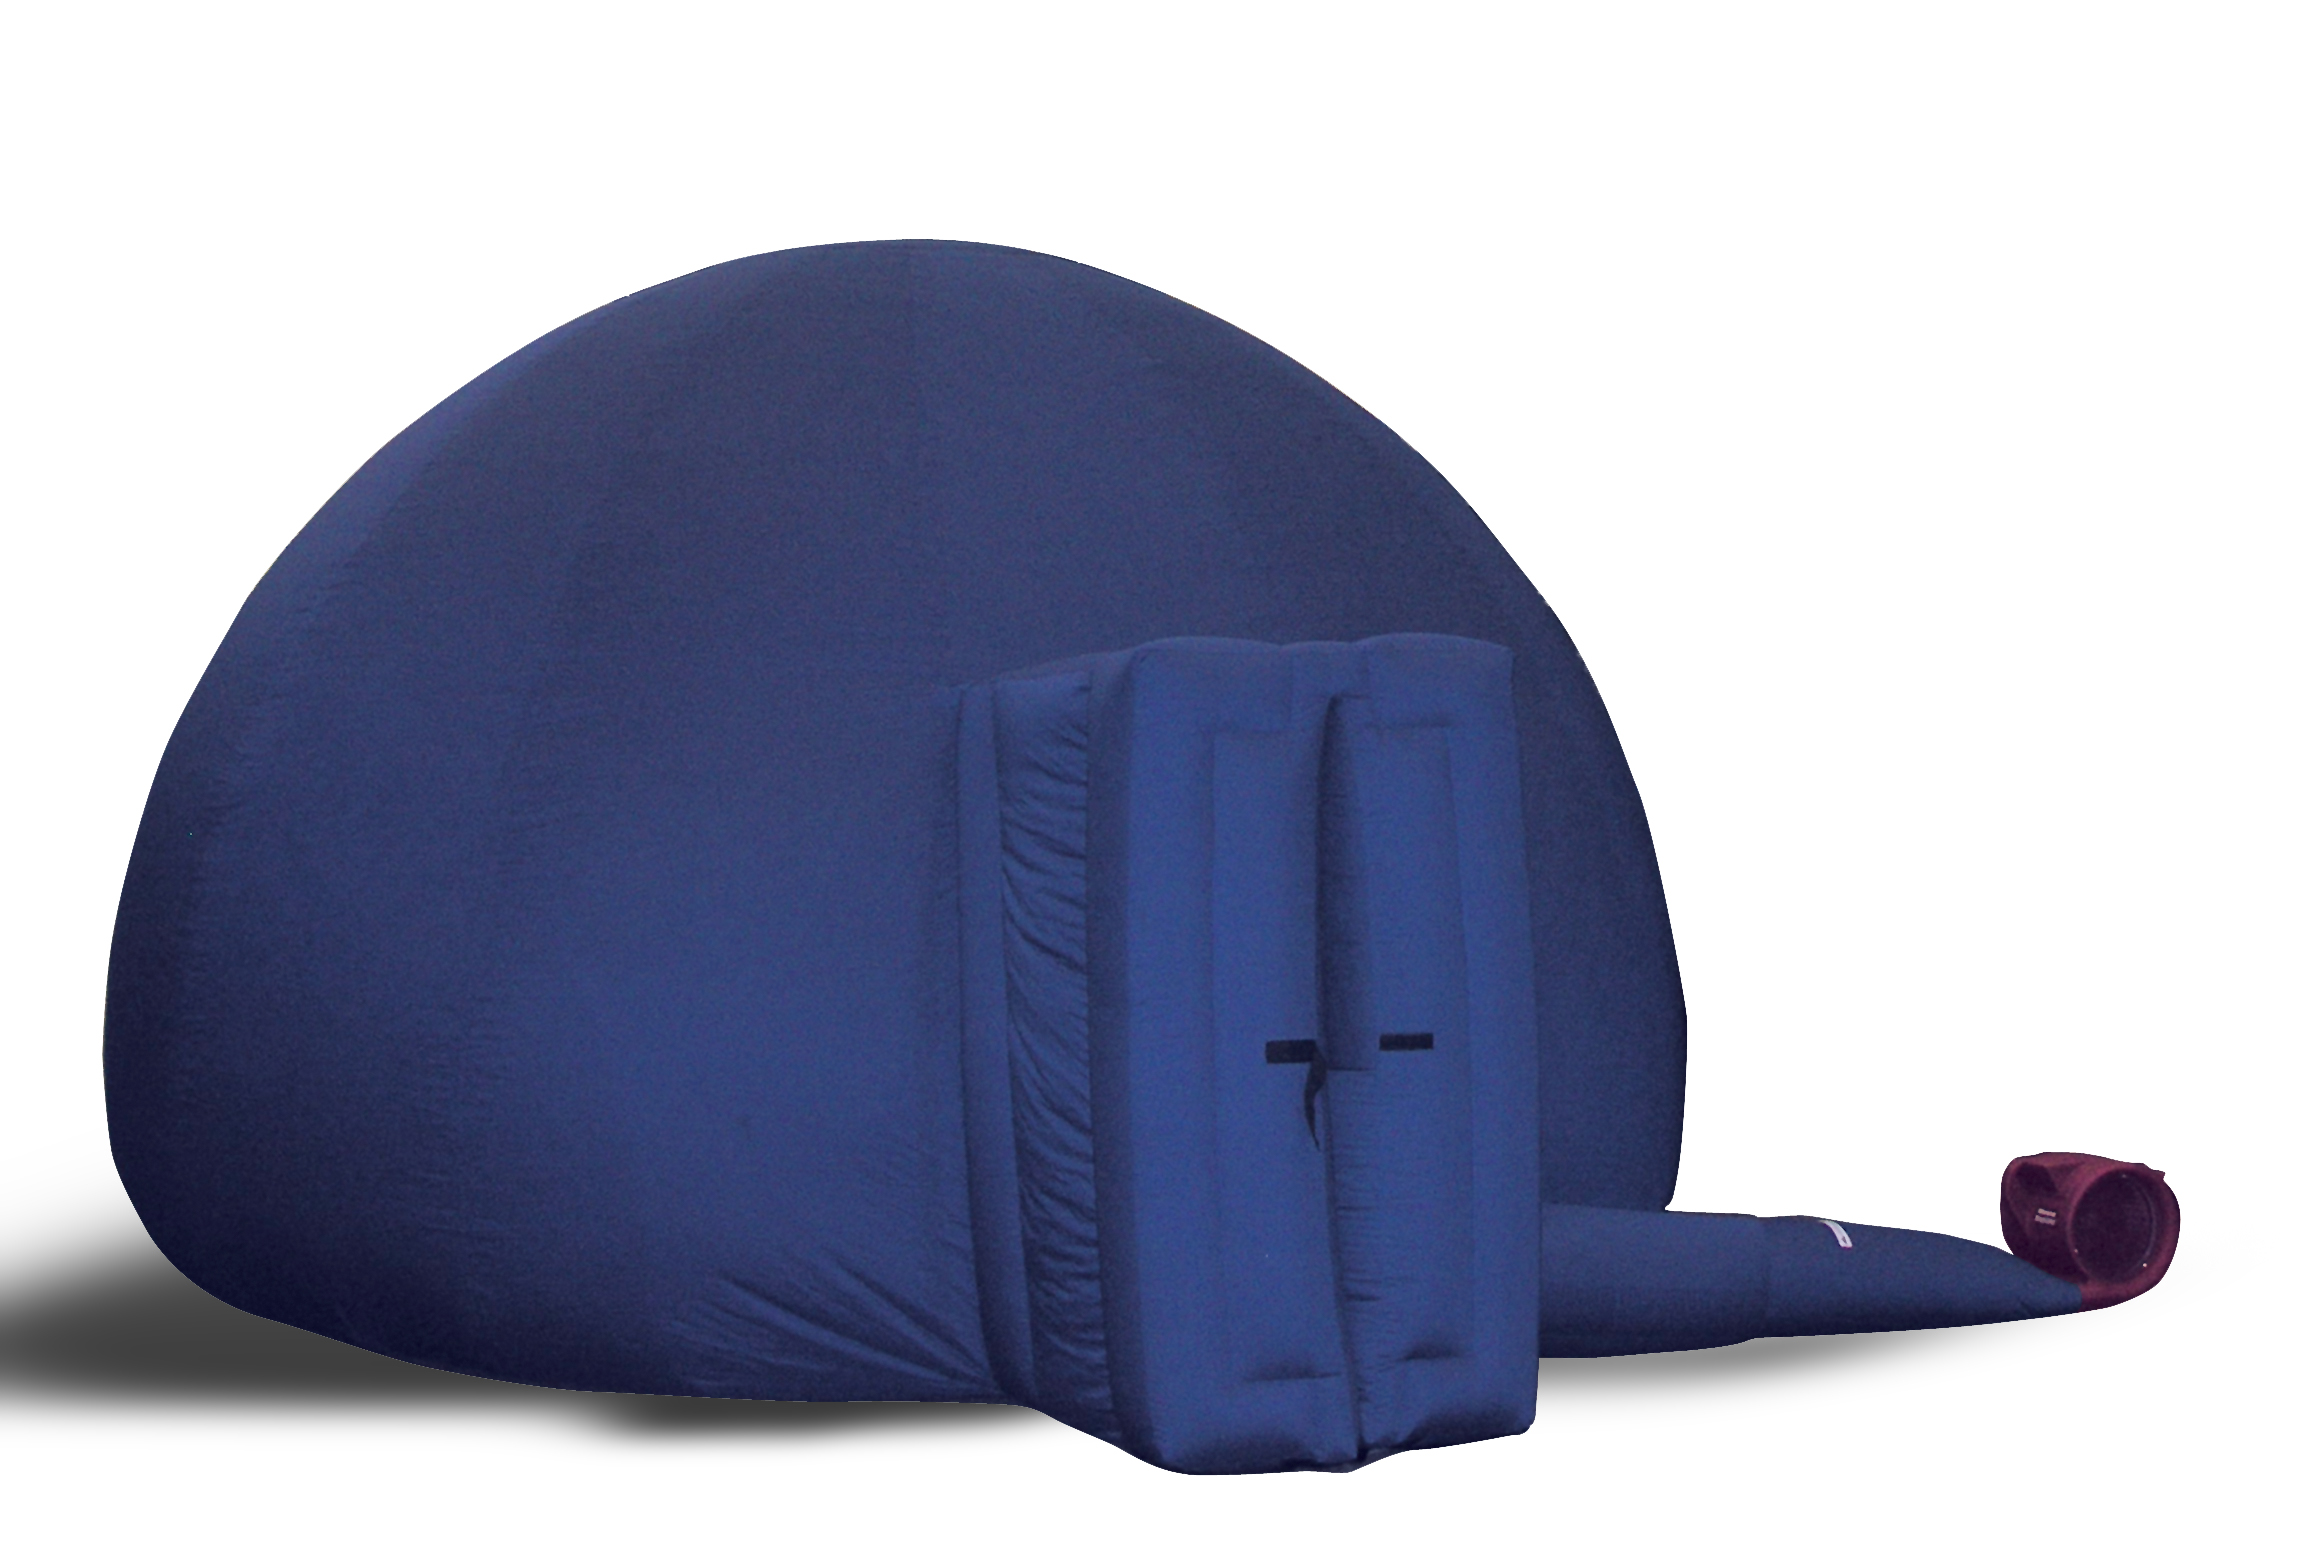 theater chair covers stressless side table go-dome™ the worlds finest portable planetarium -